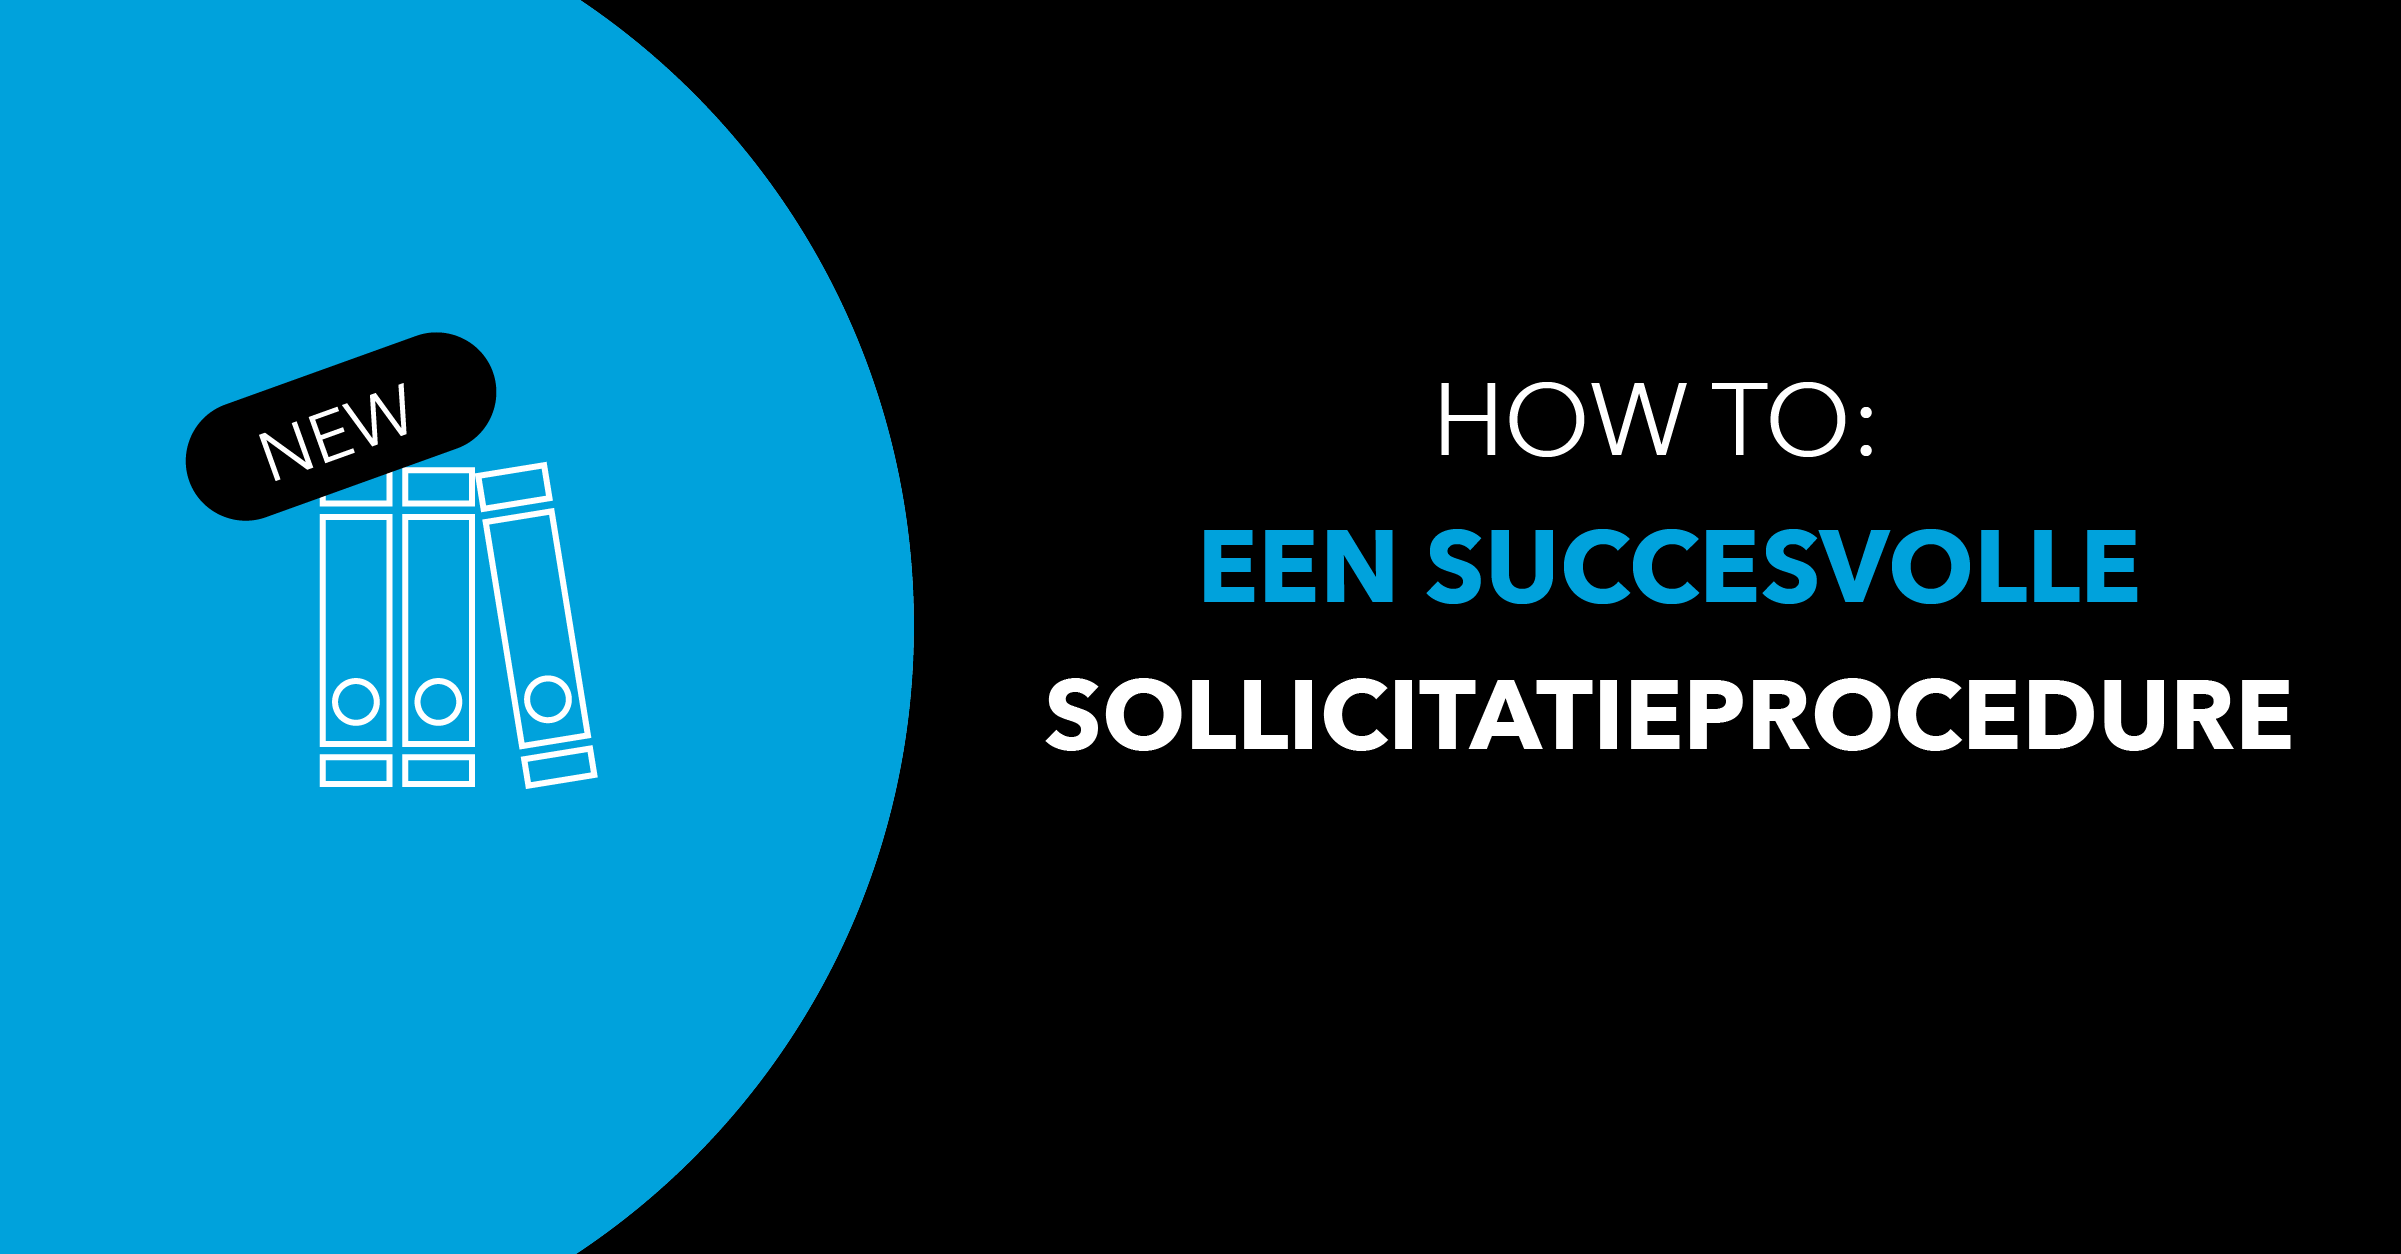 How to: een succesvolle sollicitatieprocedure